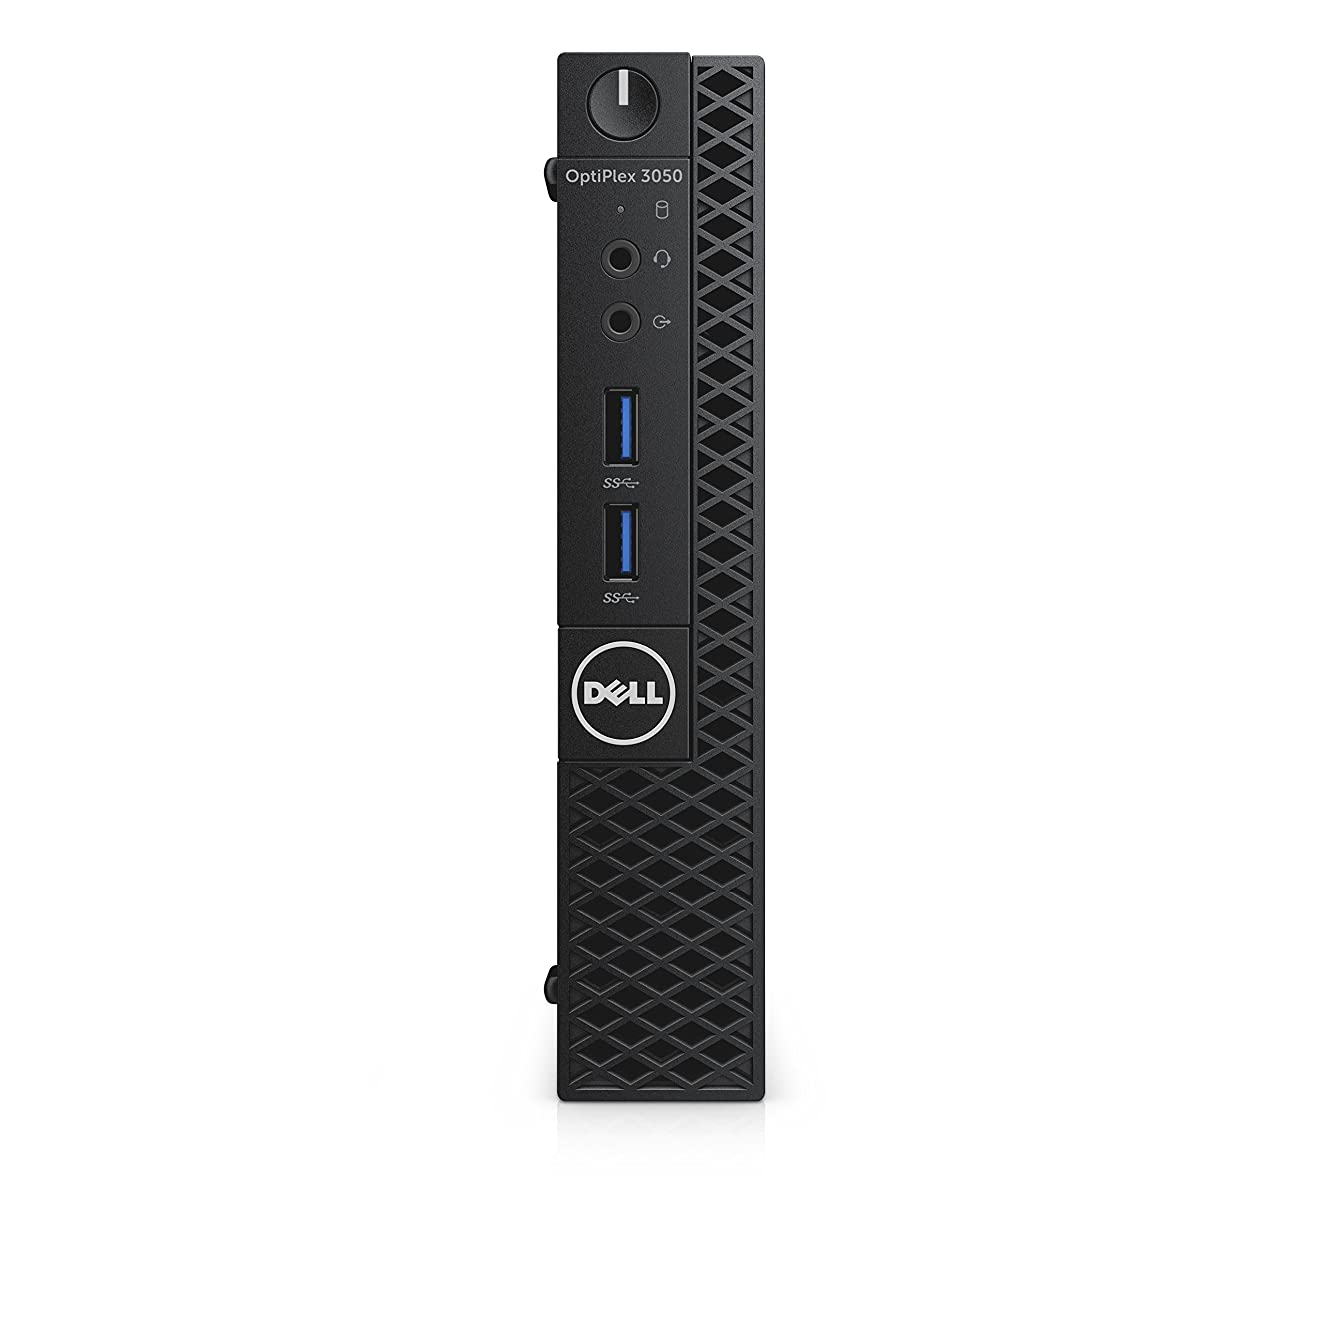 Dell CFC5C OptiPlex 3050 Micro Form Factor Desktop Computer, Intel Core i5-7500T, 8GB DDR4, 256GB Solid State Drive, Windows 10 Pro